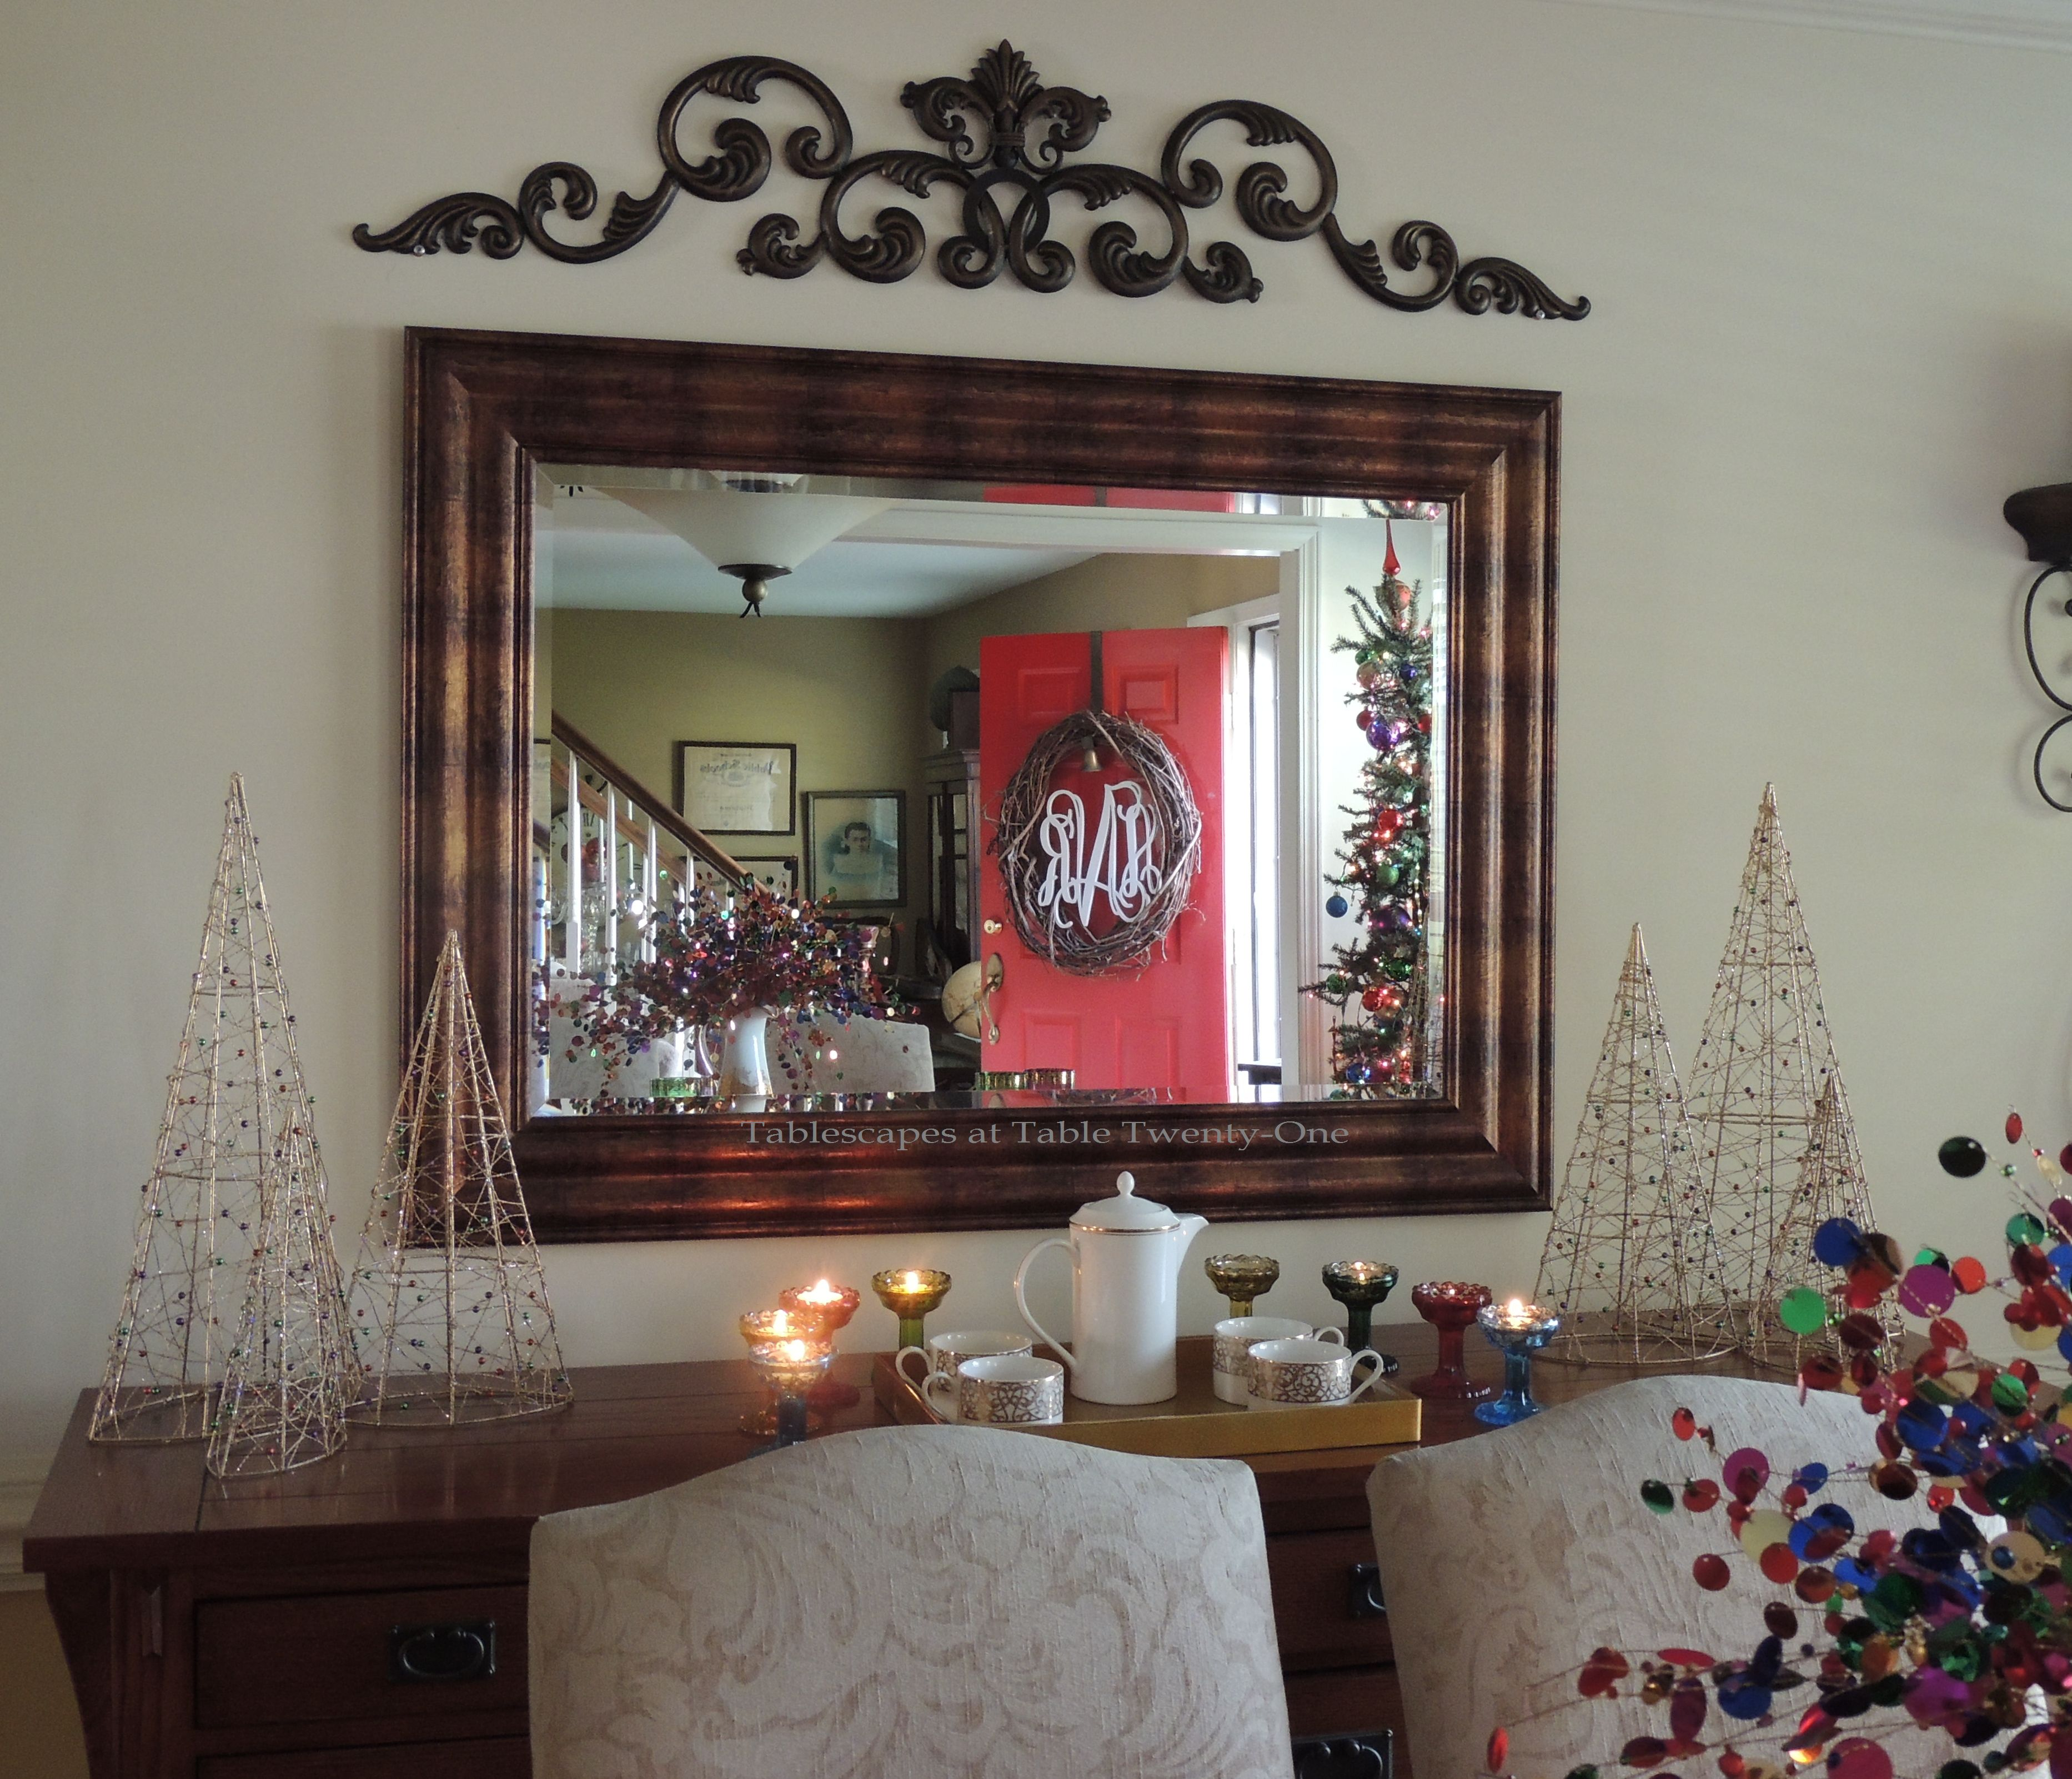 Tablescapes at Table Twenty-One, Merry & Bright Multi-Color Christmas: Buffet decor